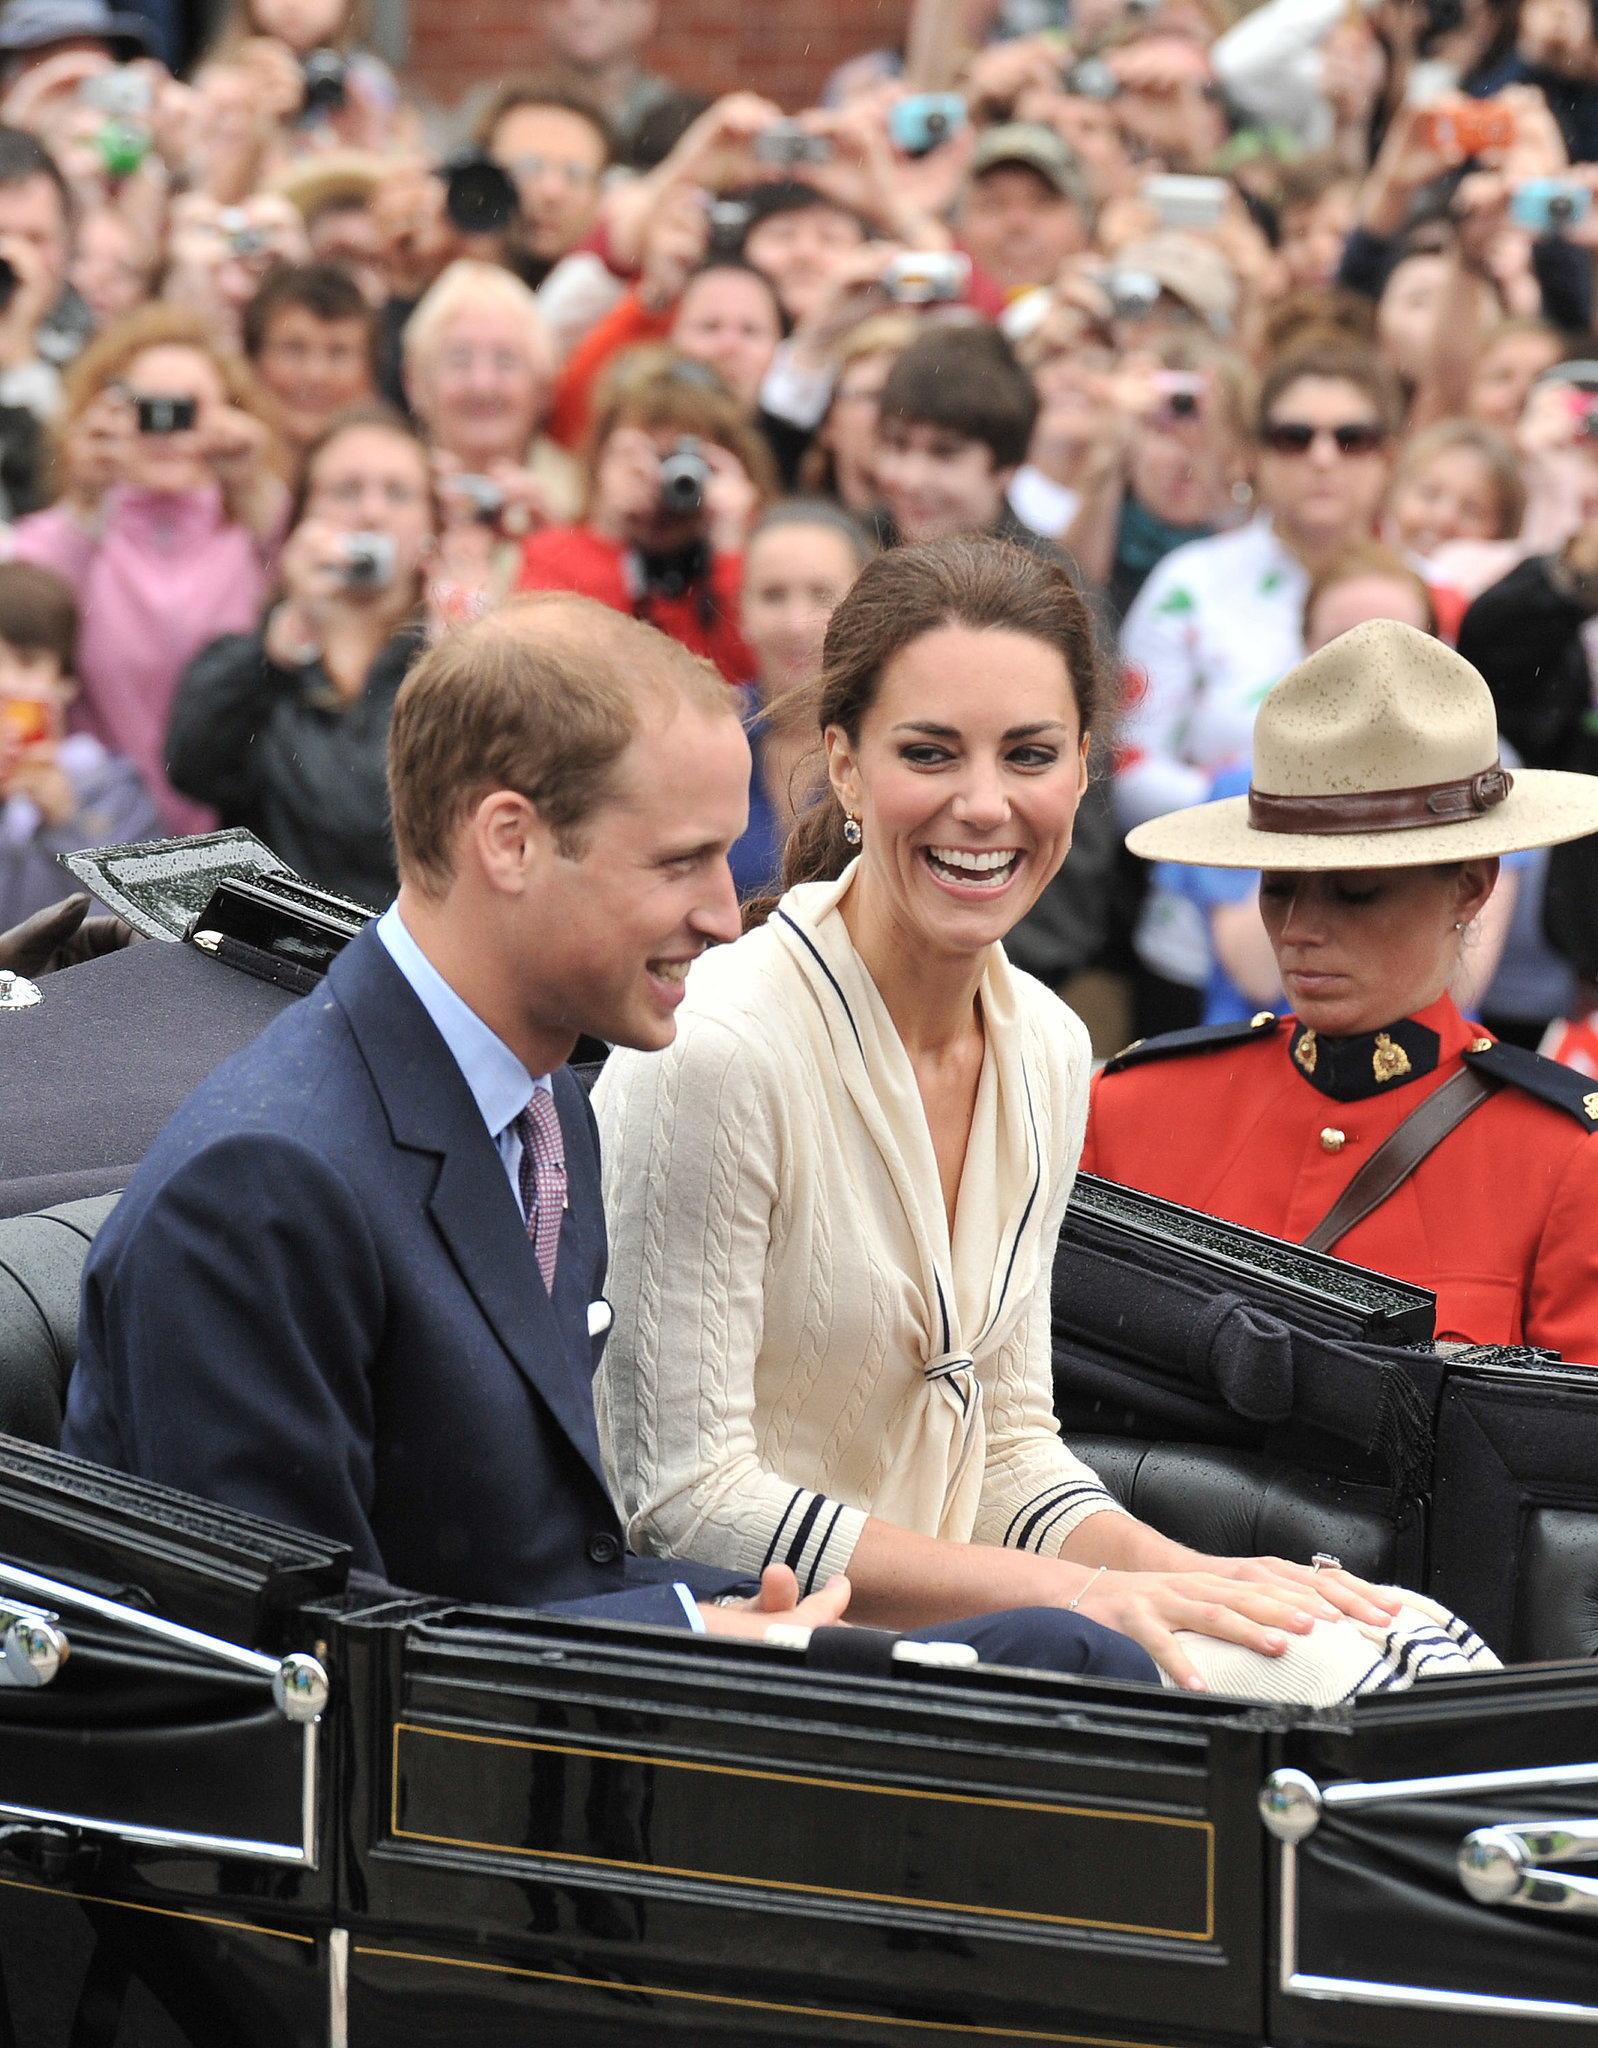 Kate and Prince William shared a laugh on Prince Edward Island in July 2011.